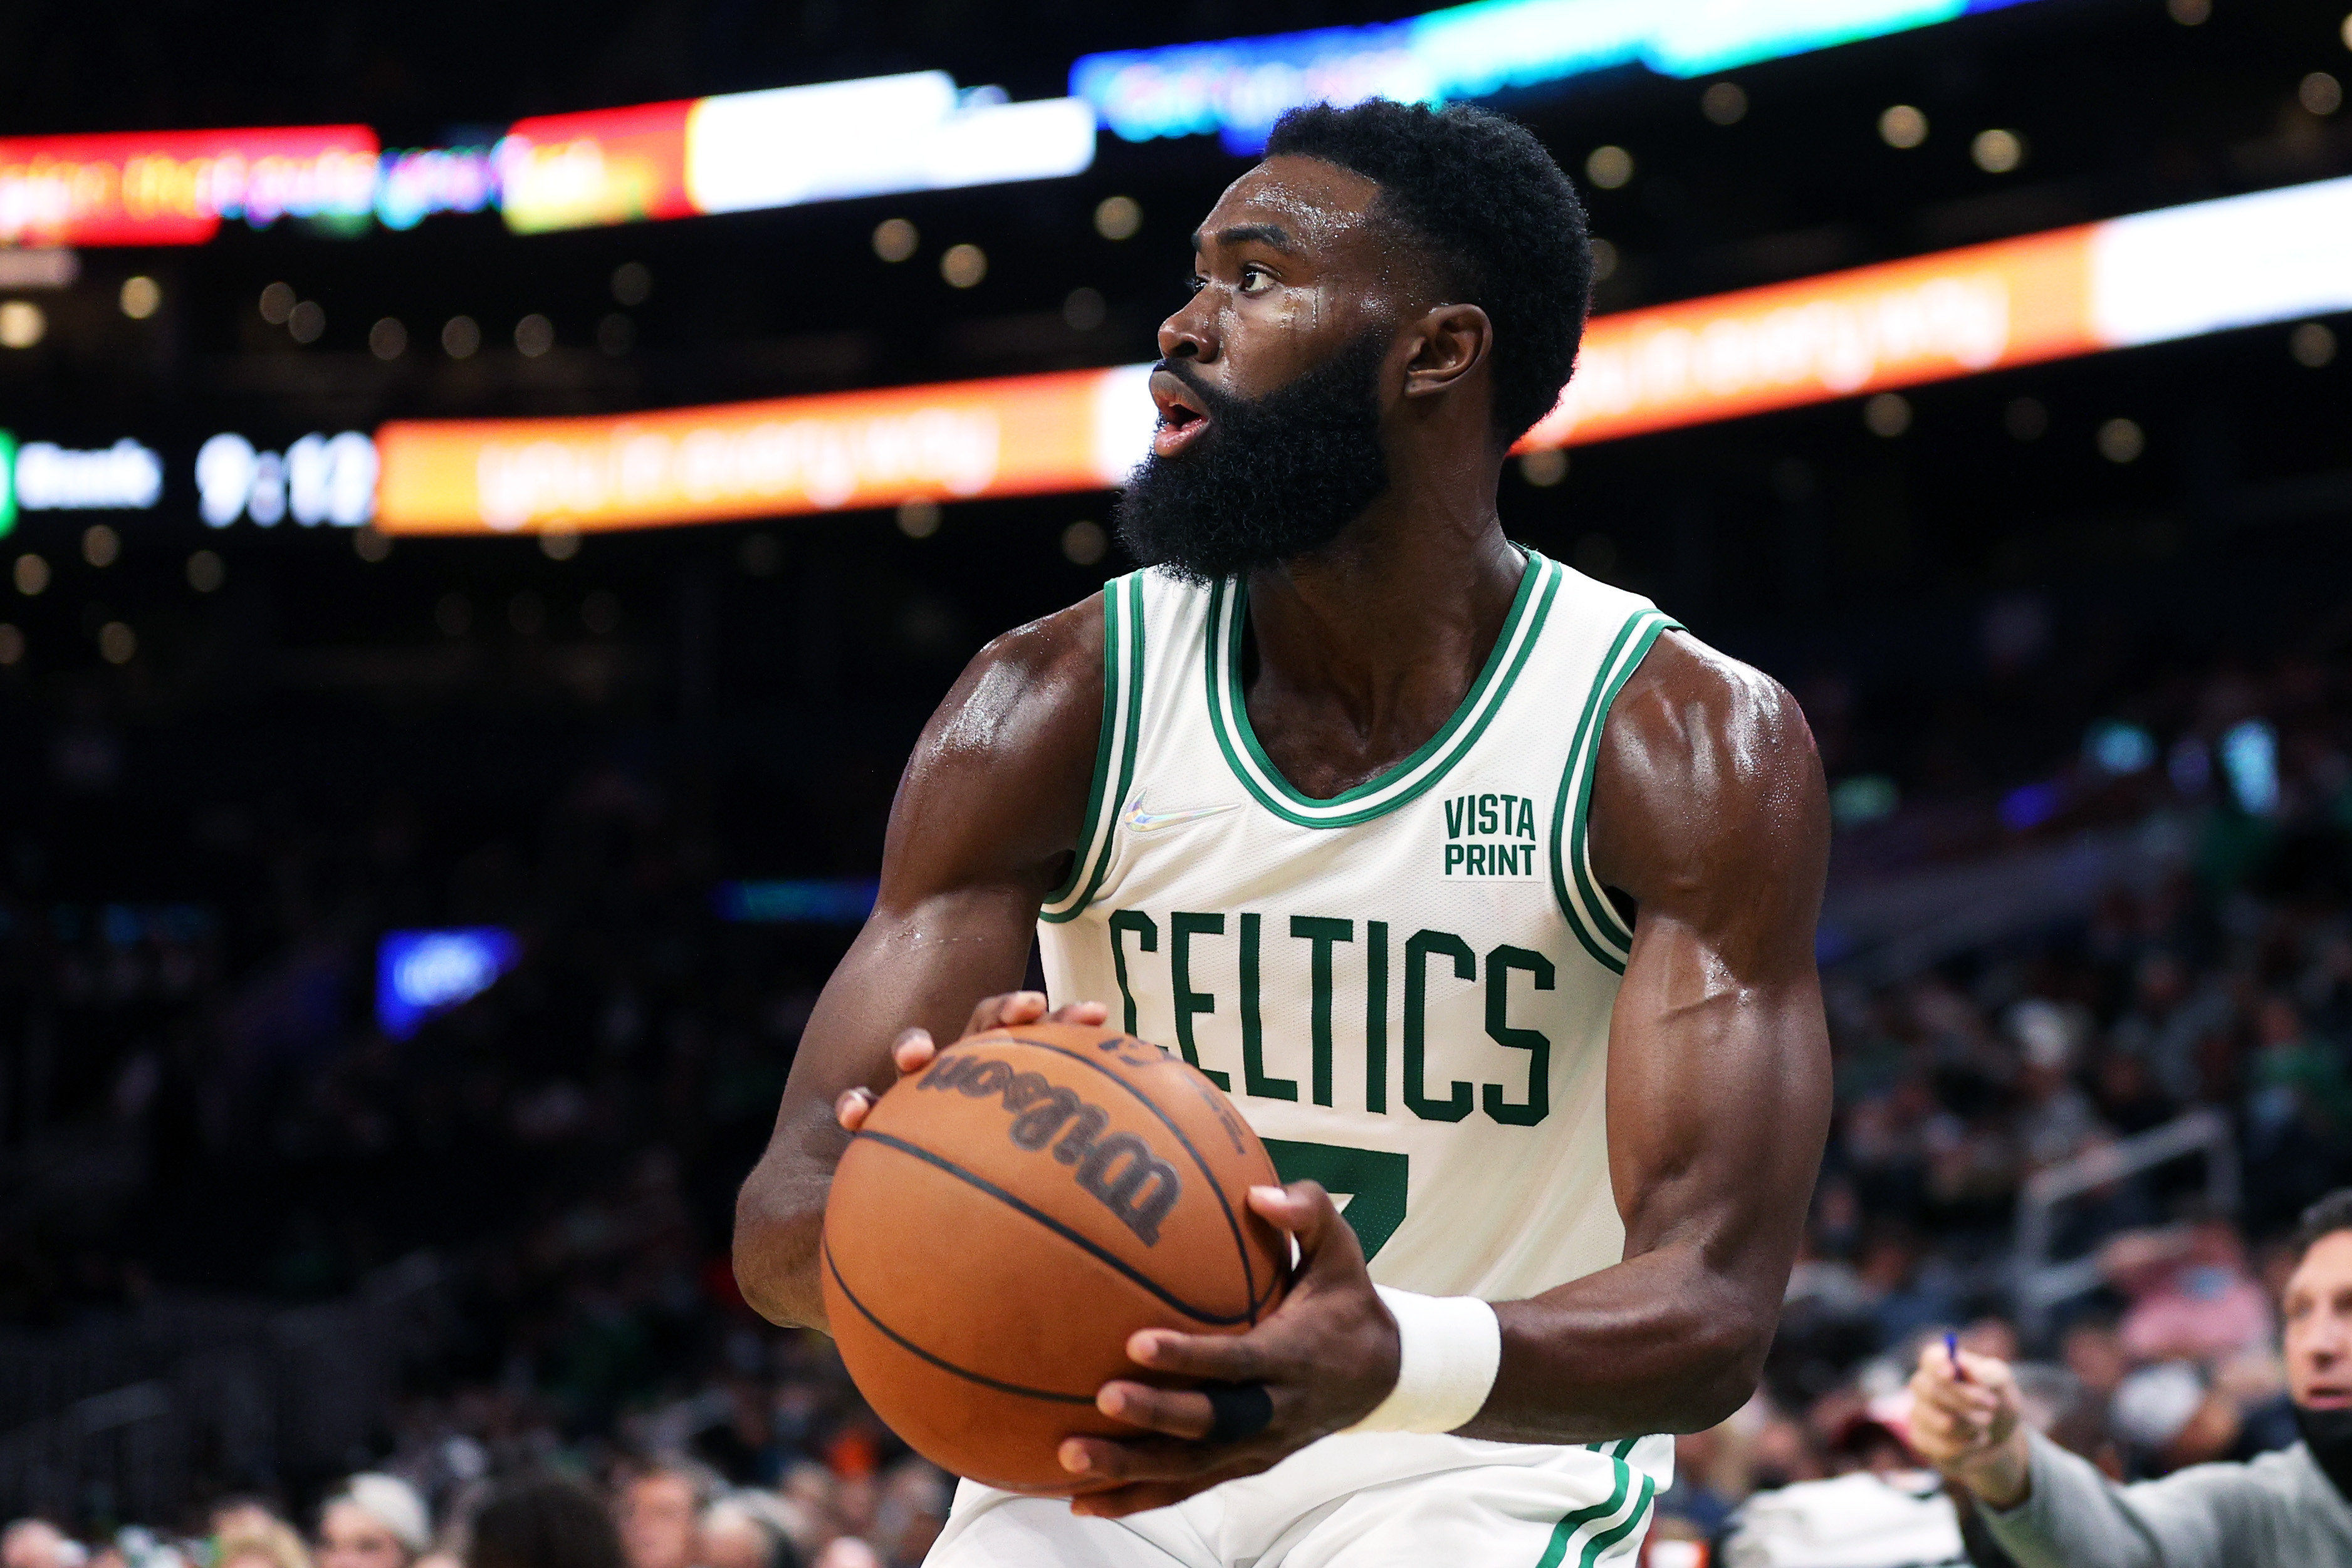 Jaylen Brown #7 of the Boston Celtics looks for a shot against the Orlando Magic during the second half of the preseason game at TD Garden on October 04, 2021 in Boston, Massachusetts.